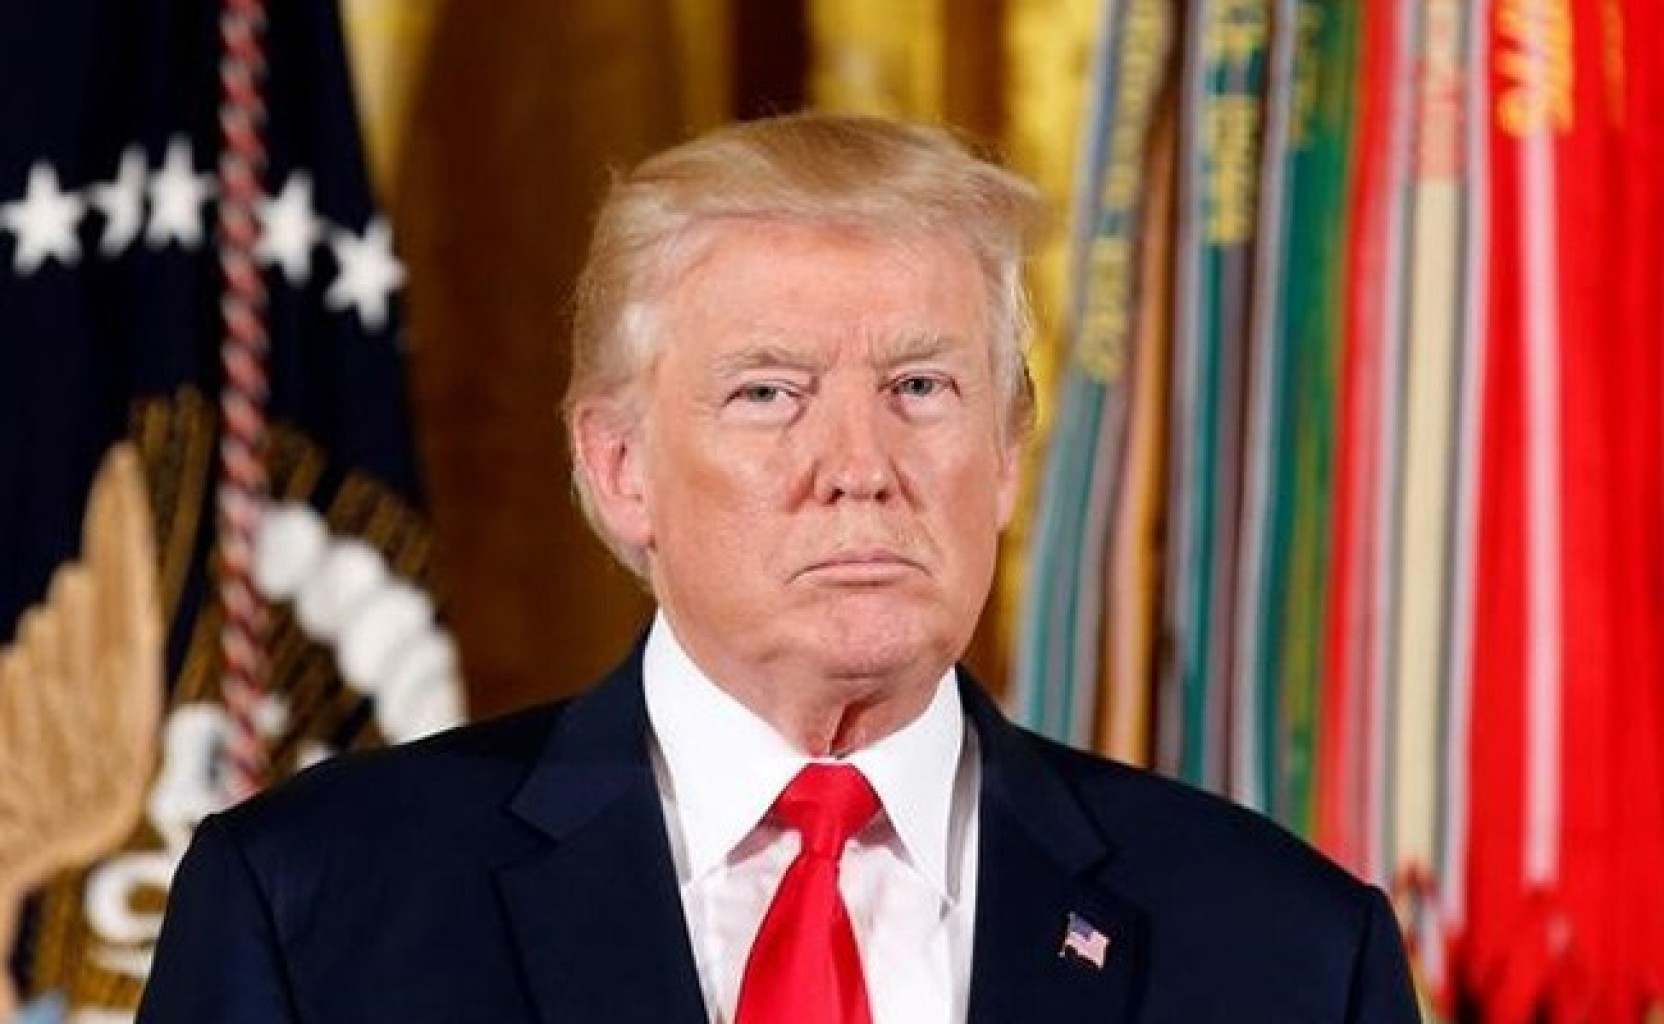 President Trump Canceled Plans to Attend Summit of the Americas in Lima Perú